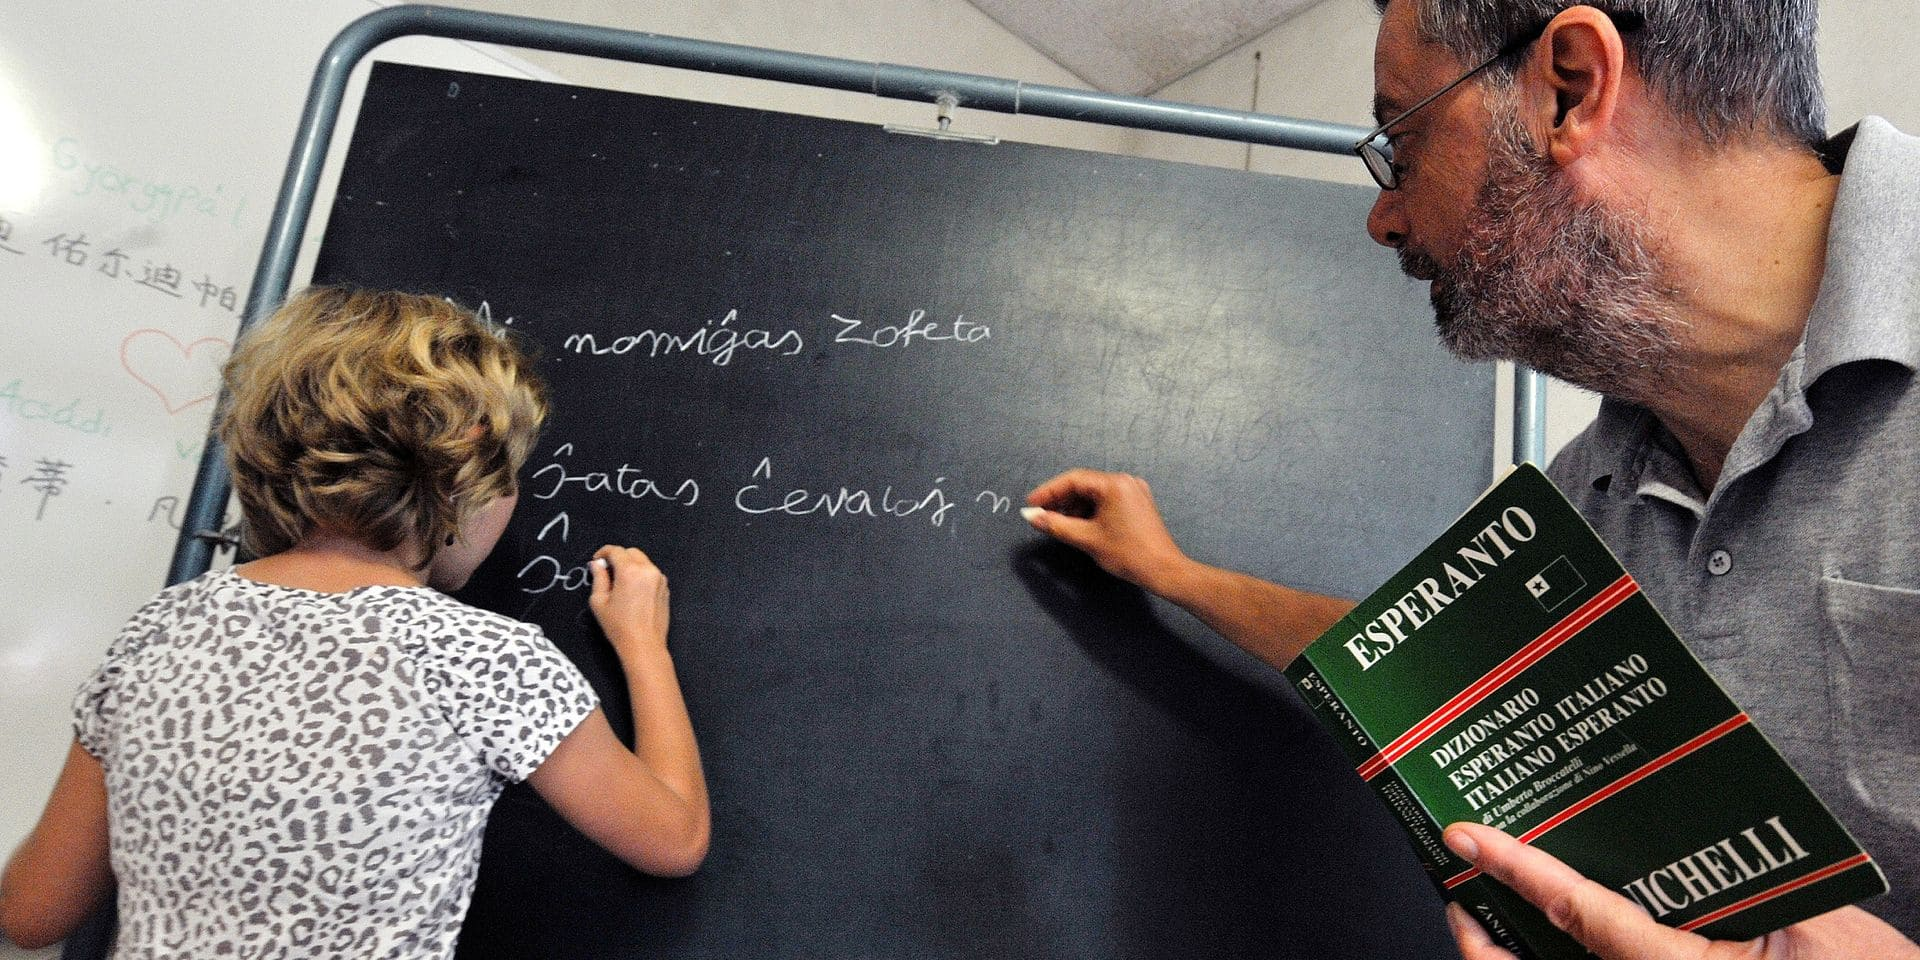 TO GO WITH AFP STORY BY PHILIPPE SCHWAB A girl writes on a blackboard during an Esperanto lesson on August 8, 2013 at the Chateau de Gresillon in Saint-Martin-d'Arce, western France. Esperanto is an artificial international language, created in 1887 by Polish oculist Lazarus Ludwig Zamenhof, and based as far as possible on words common to the chief European languages. AFP PHOTO / FRANK PERRY / AFP PHOTO / FRANK PERRY